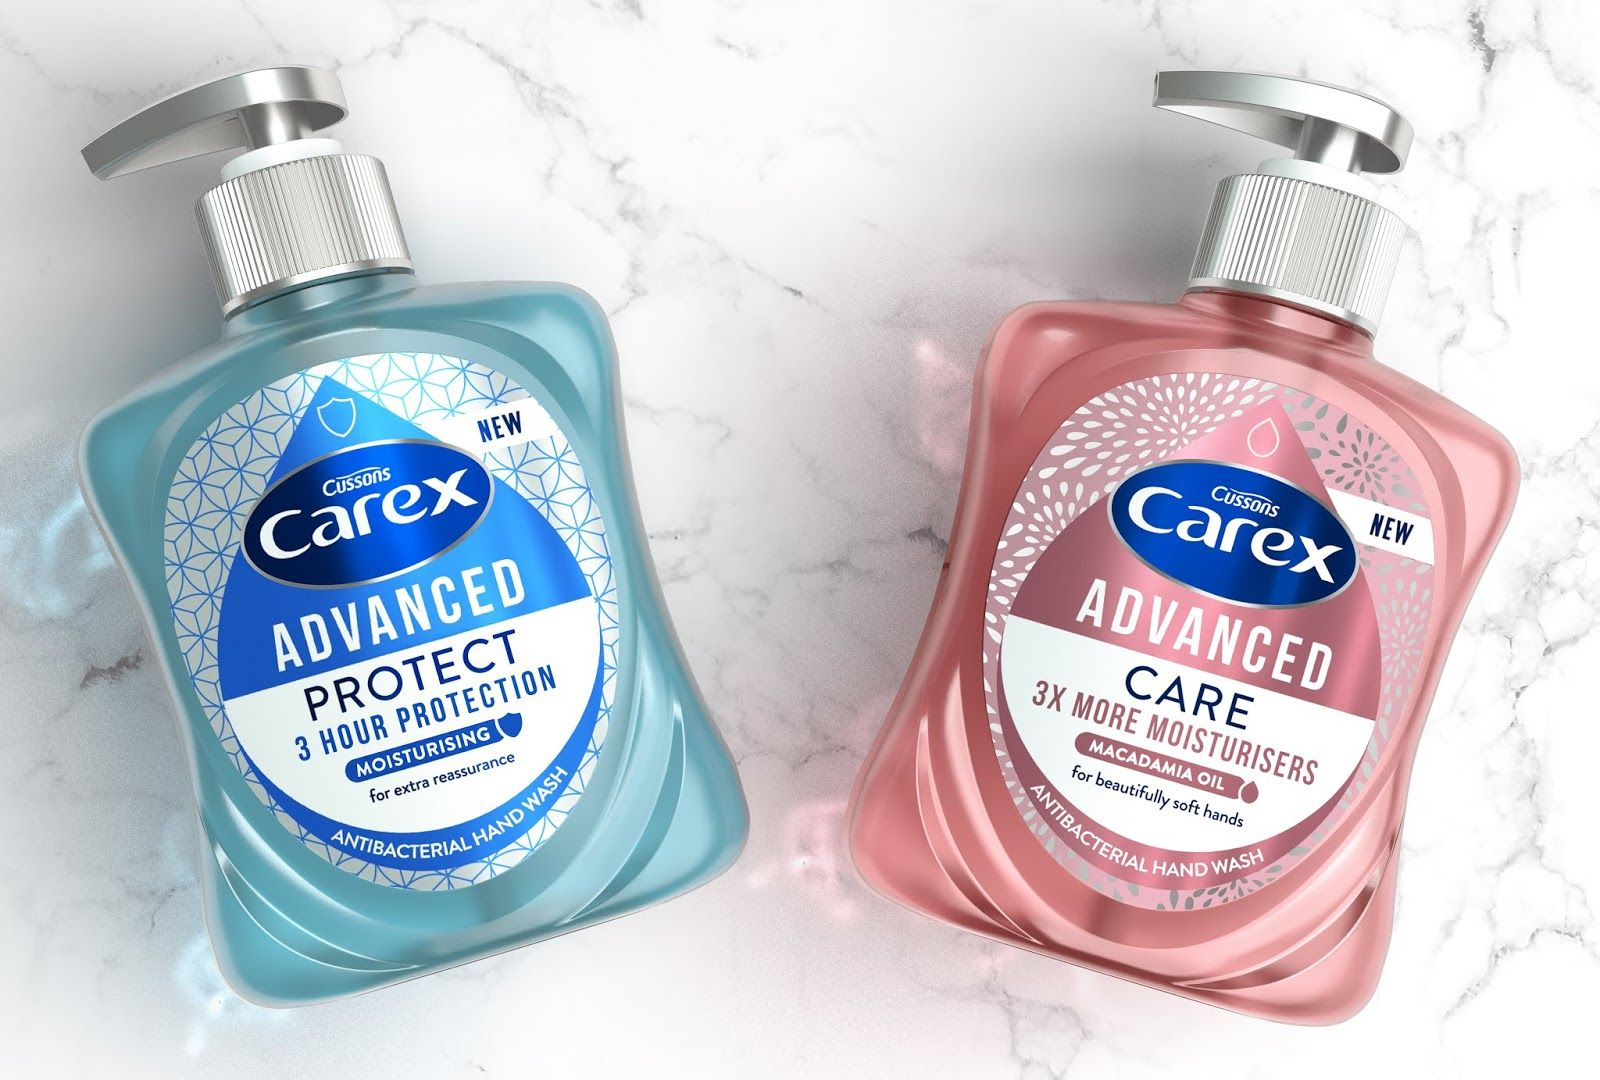 Carex 25 Years Redesigned Shampoo Bottles Design Packaging